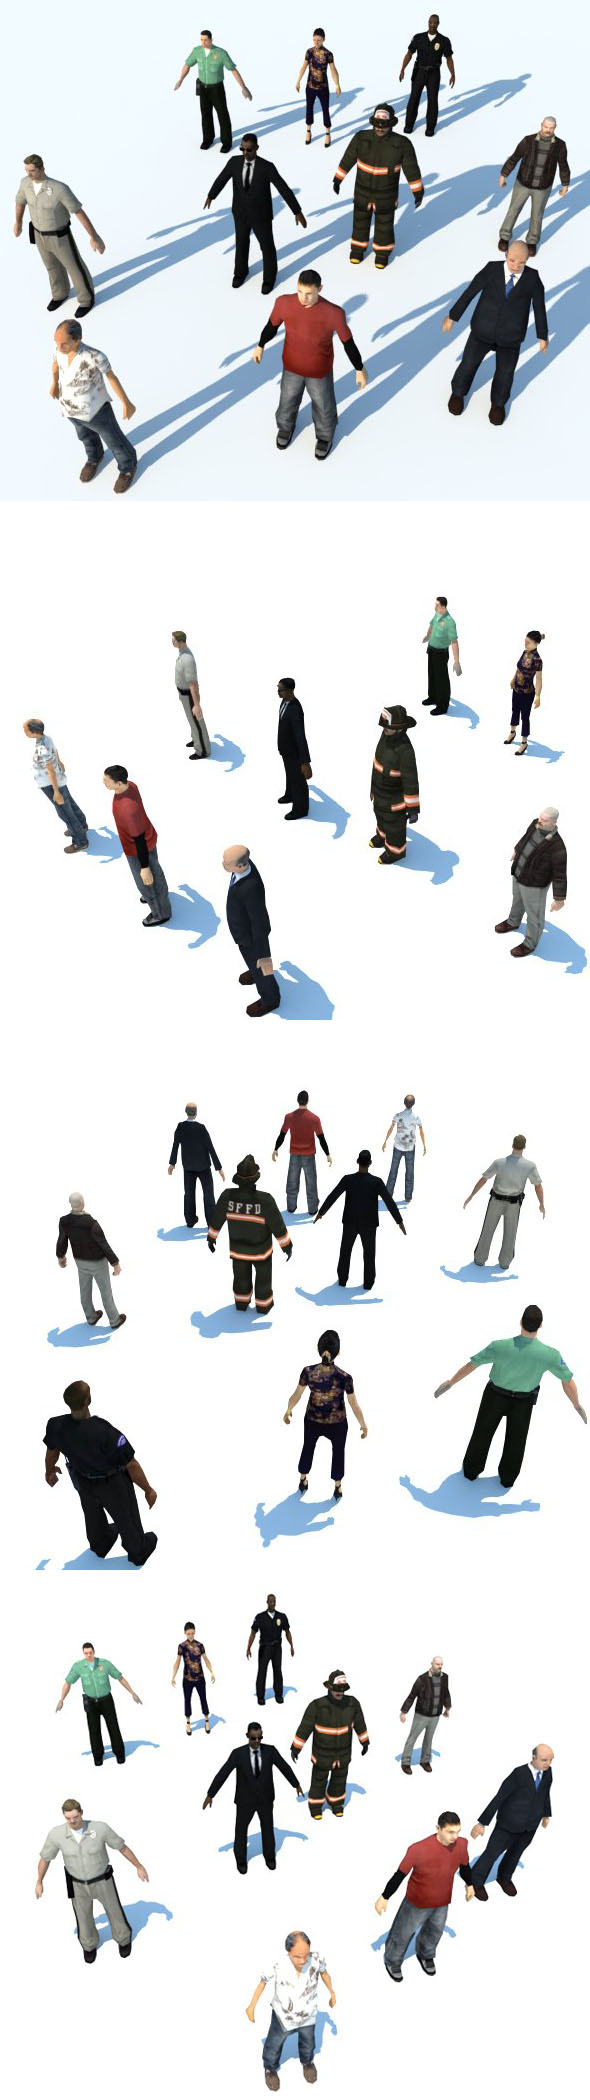 10 LOW POLY PEOPLE part2 - 3DOcean Item for Sale